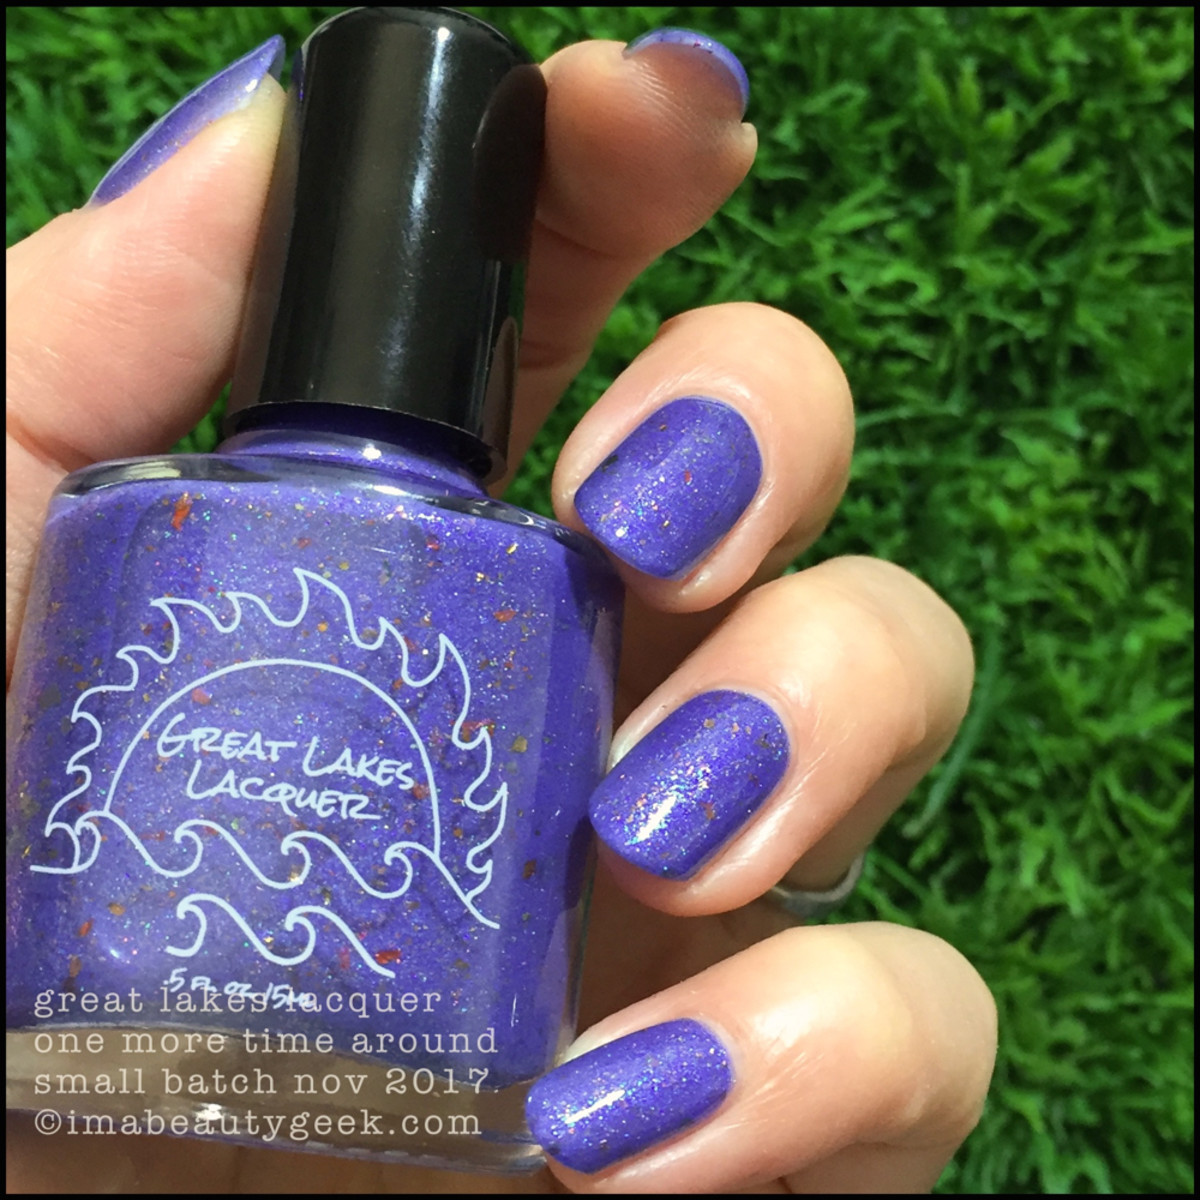 Great Lakes Lacquer One More Time Around 2 _ Great Lakes Lacquer Holiday 2017